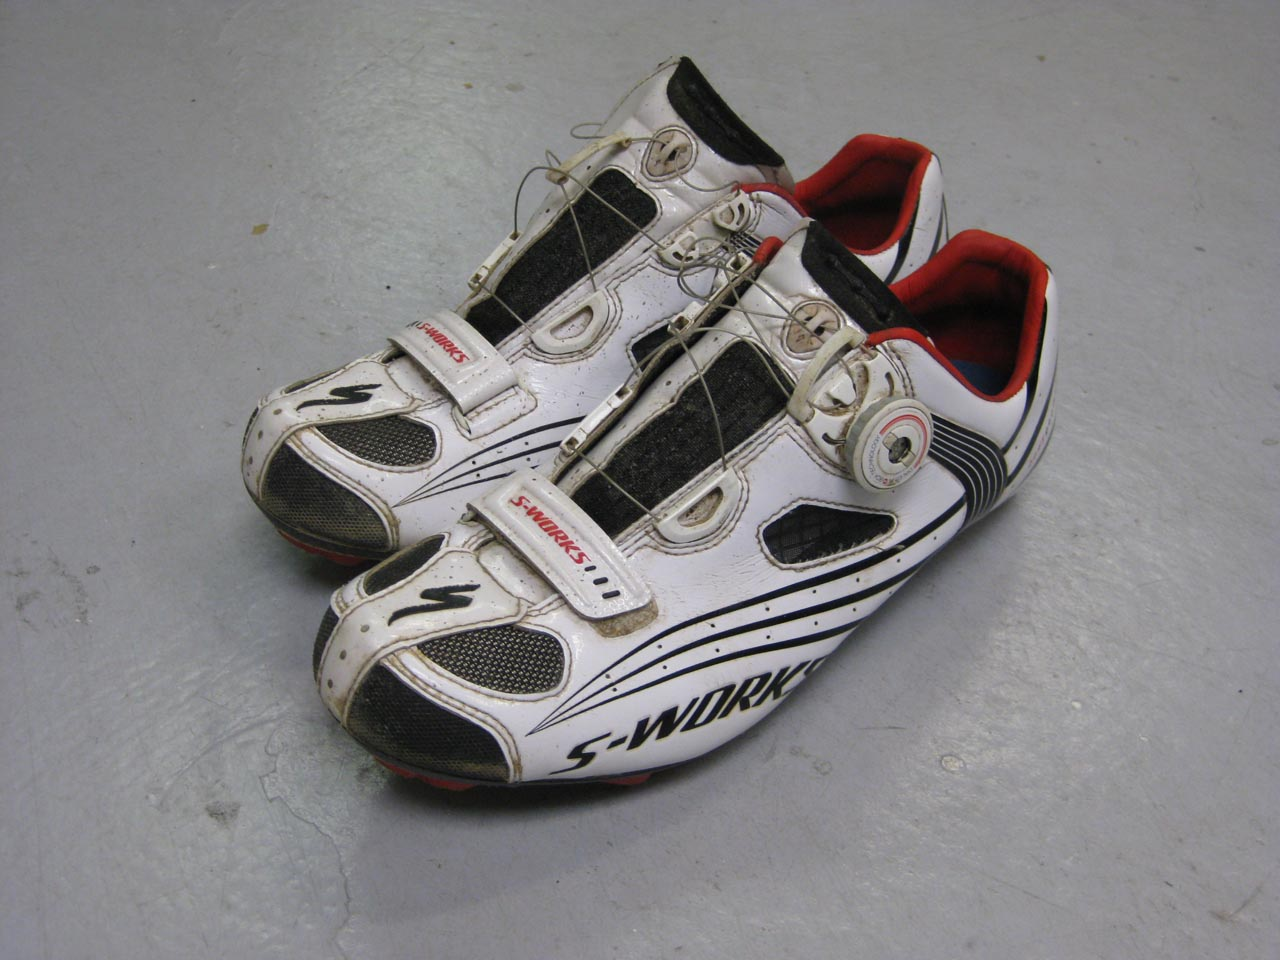 Specialized 2010 S Works Mtb Shoes Only Slightly At Time Of Photo